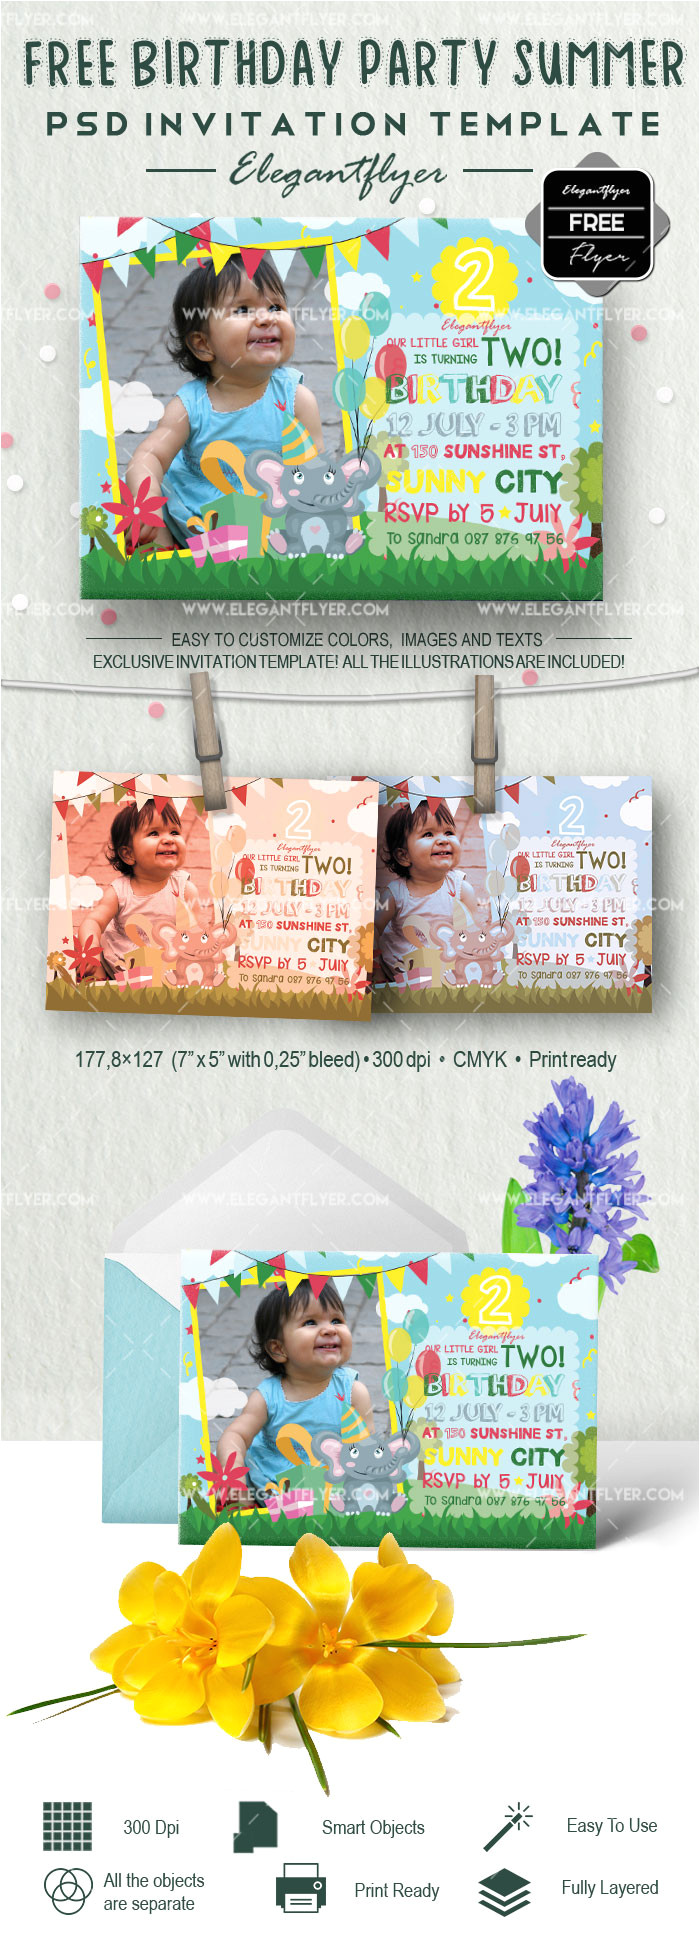 free birthday party summer invitation psd template